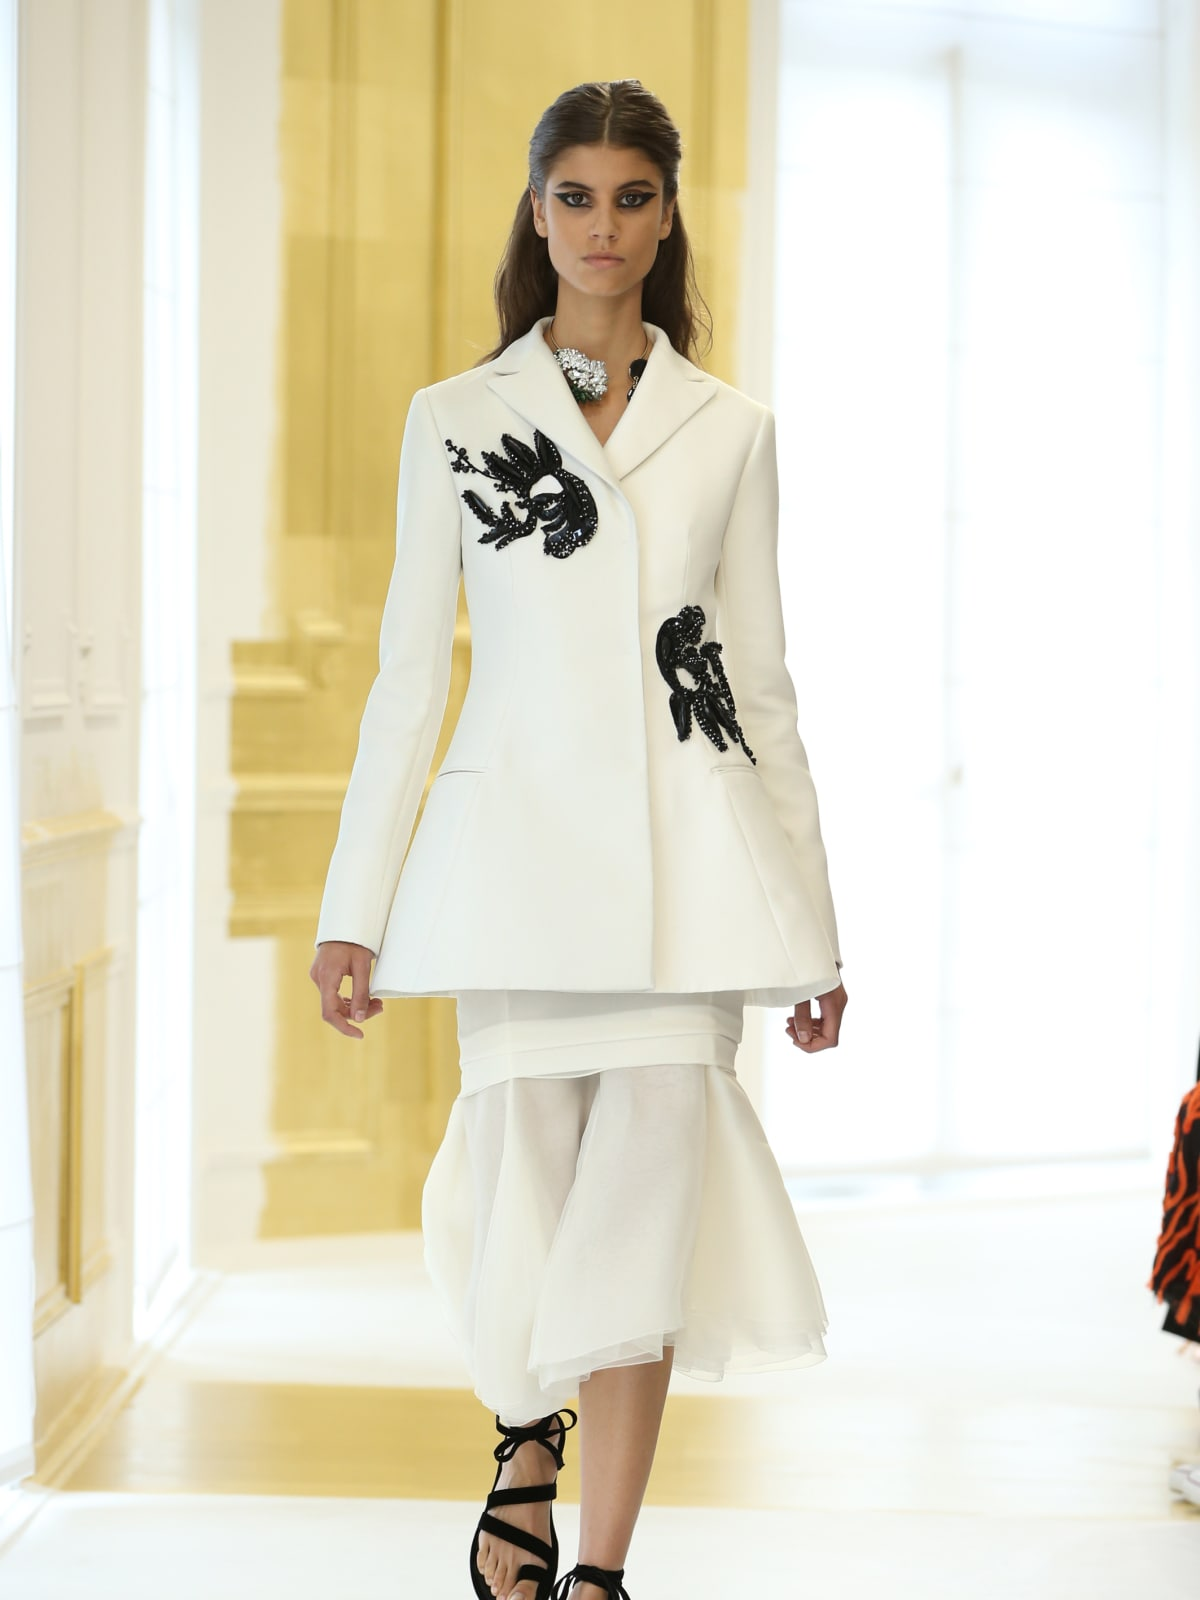 Dior haute couture runway show Paris finale look 12